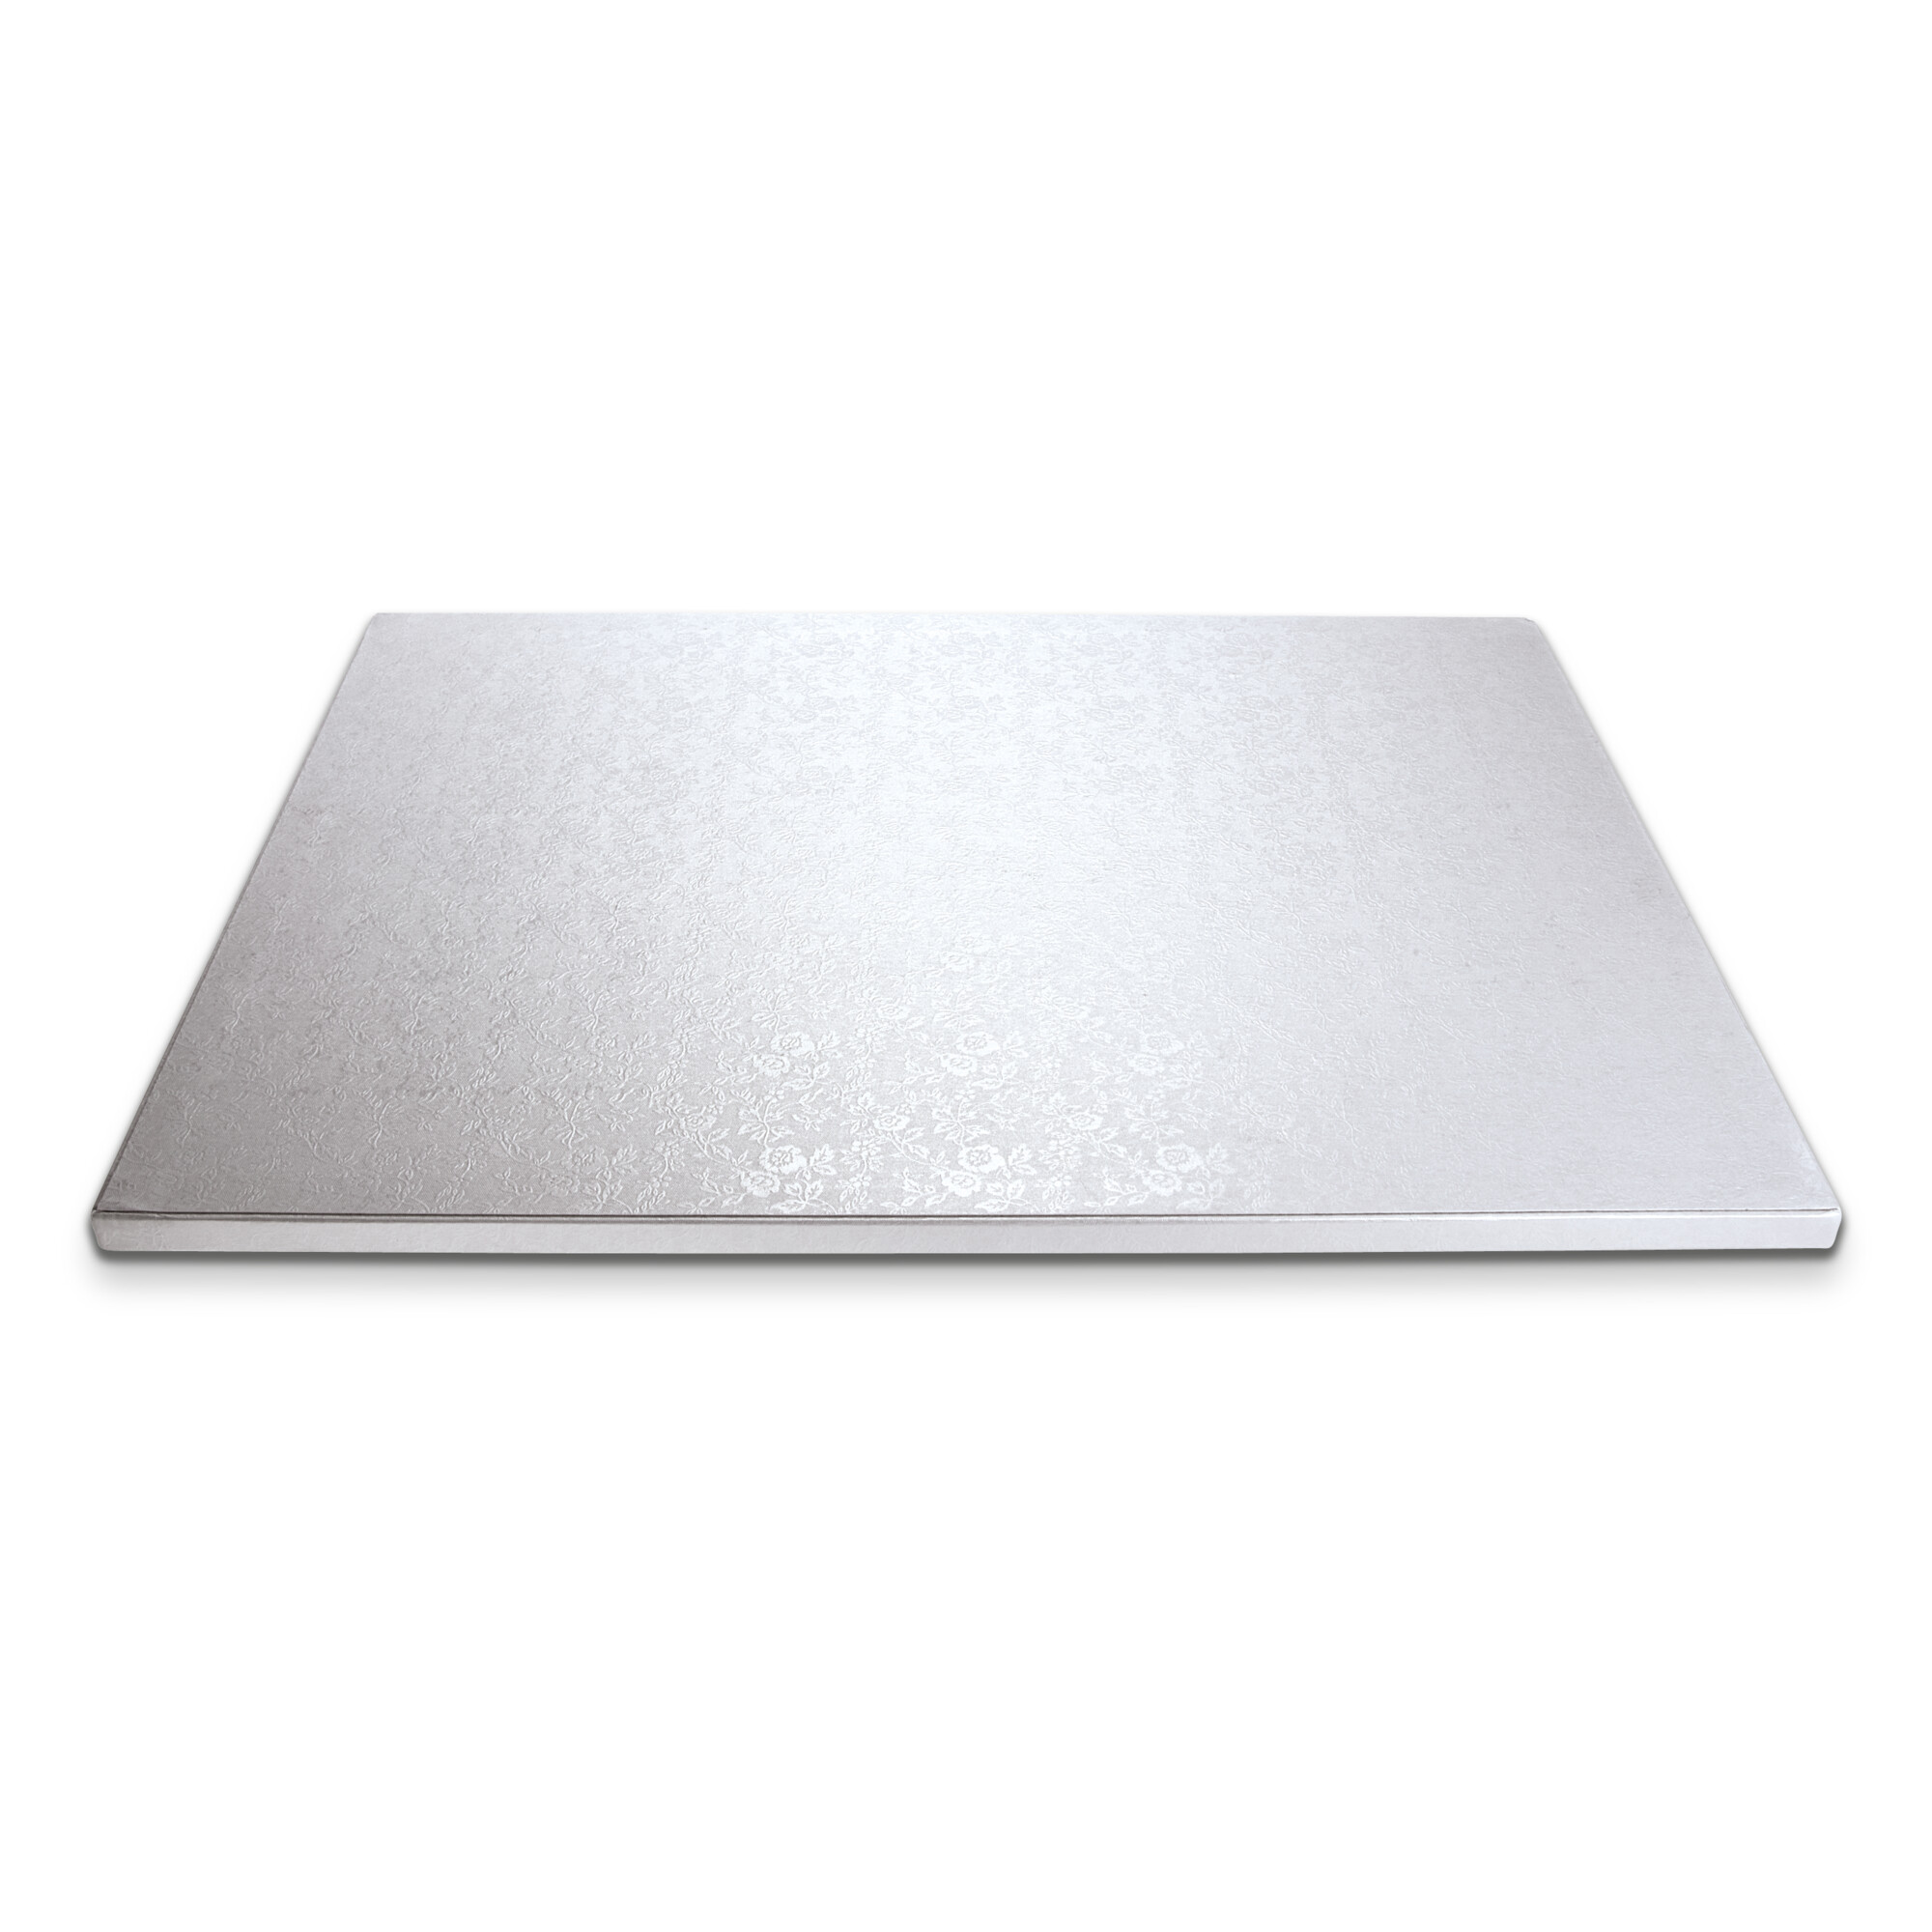 Cake board - Rectangle - extra strong